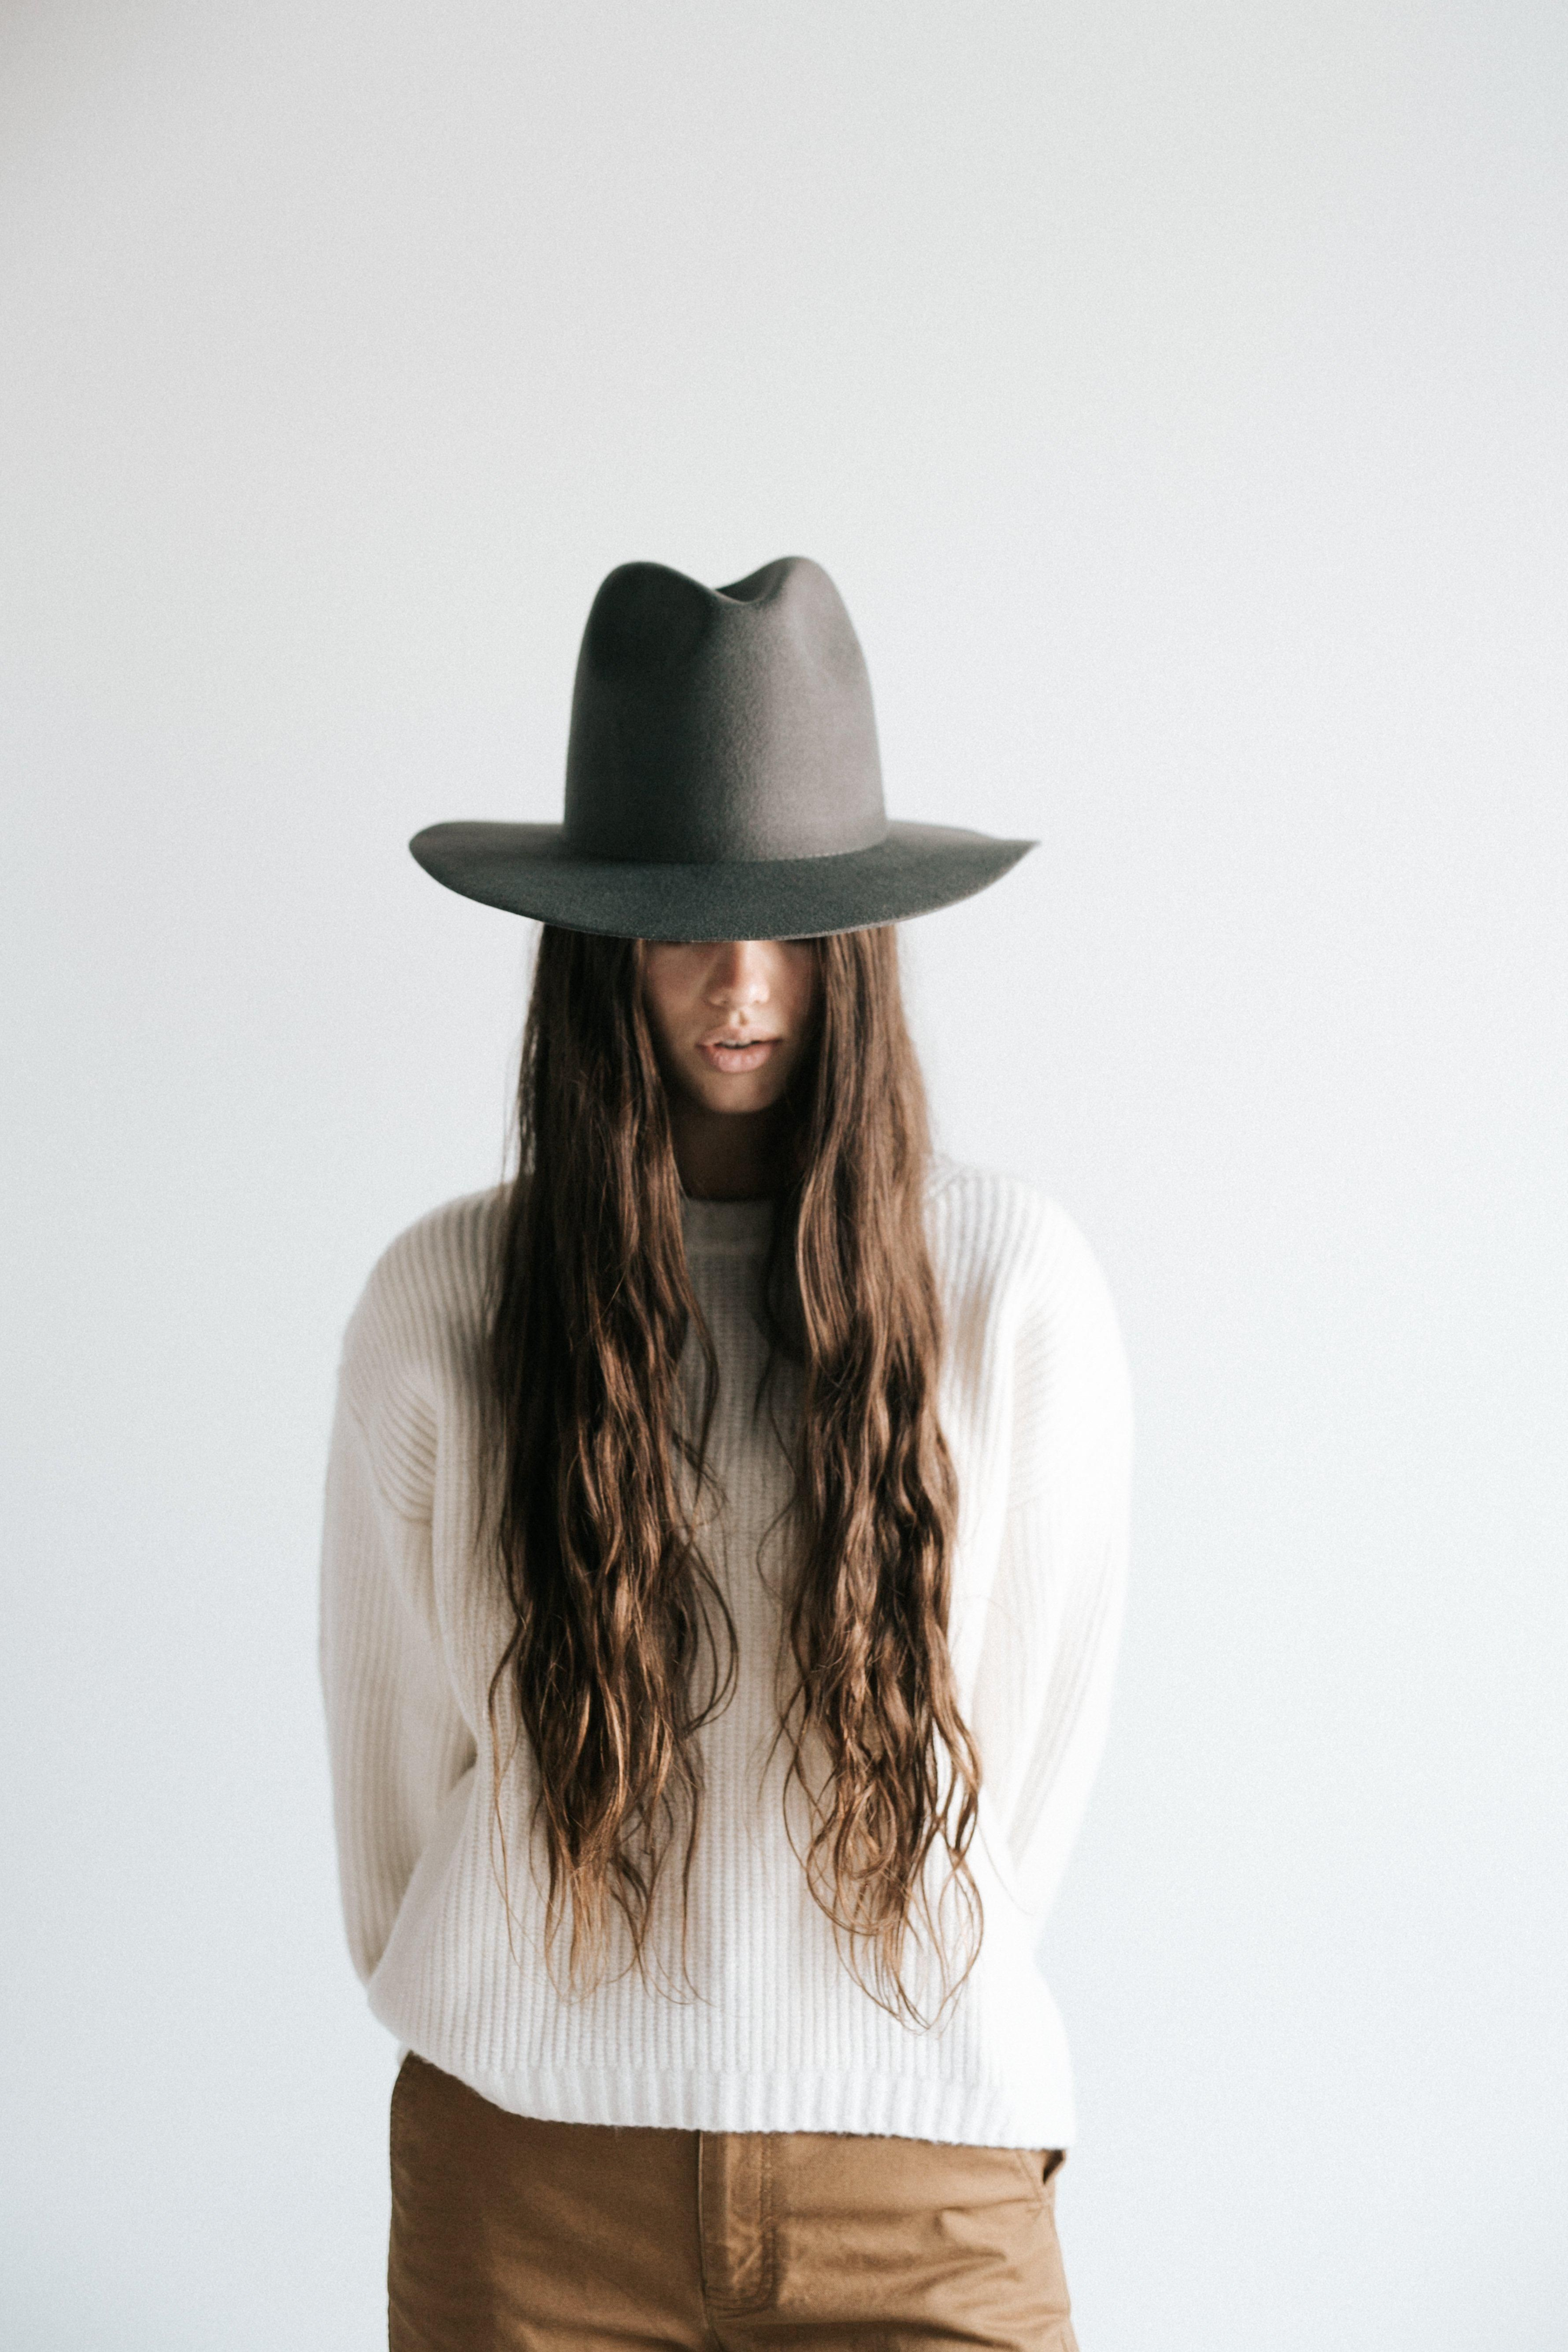 Billie Tall Fedora Dark Grey In 2021 Fashion Grey Hat Outfit Outfits With Hats